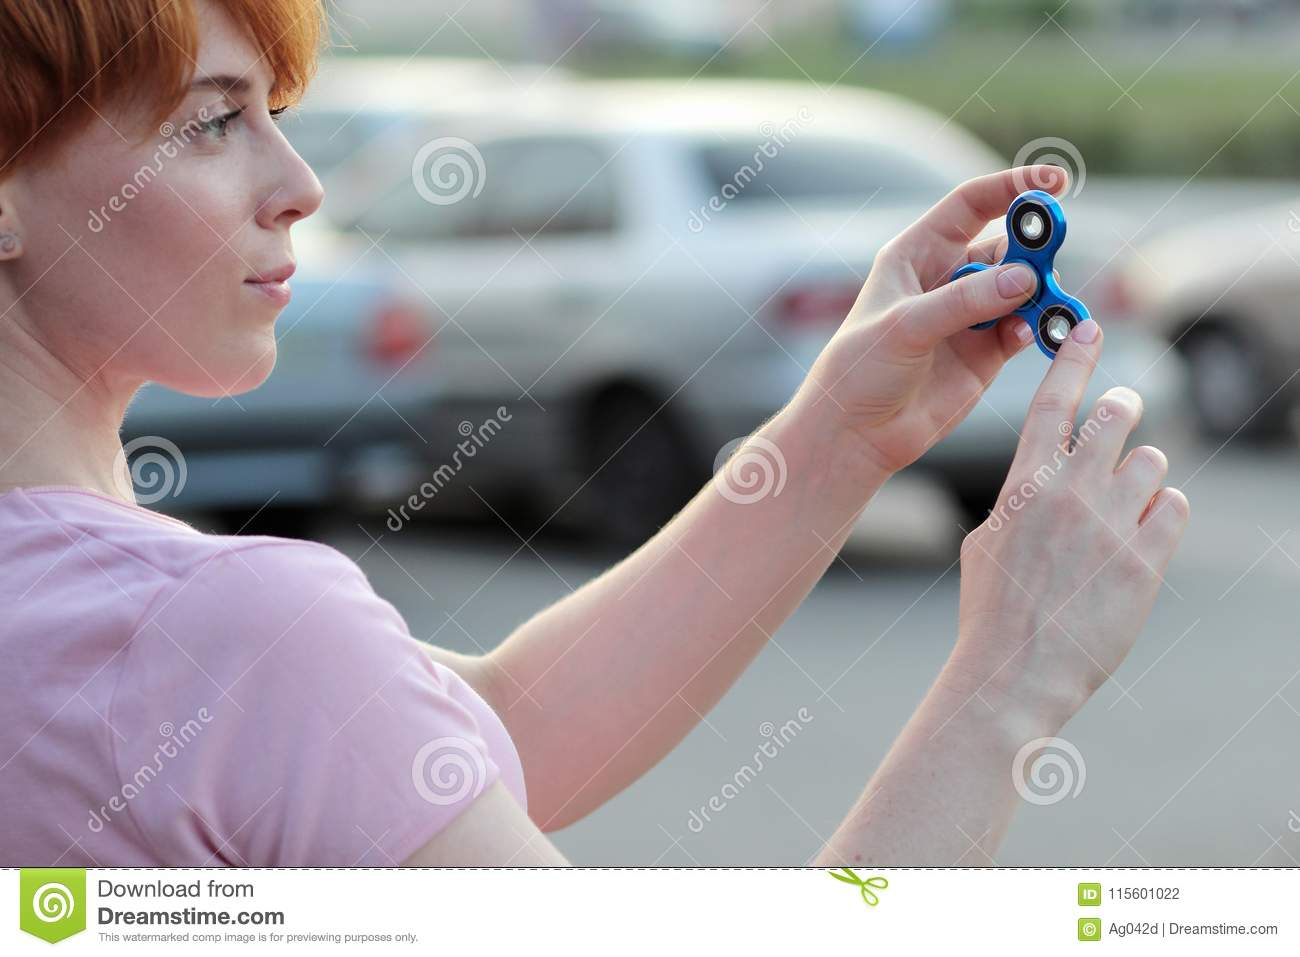 Girl in pink t-shirt is playing blue metal spinner in hands on the street, woman playing with a popular fidget spinner toy, anxiet